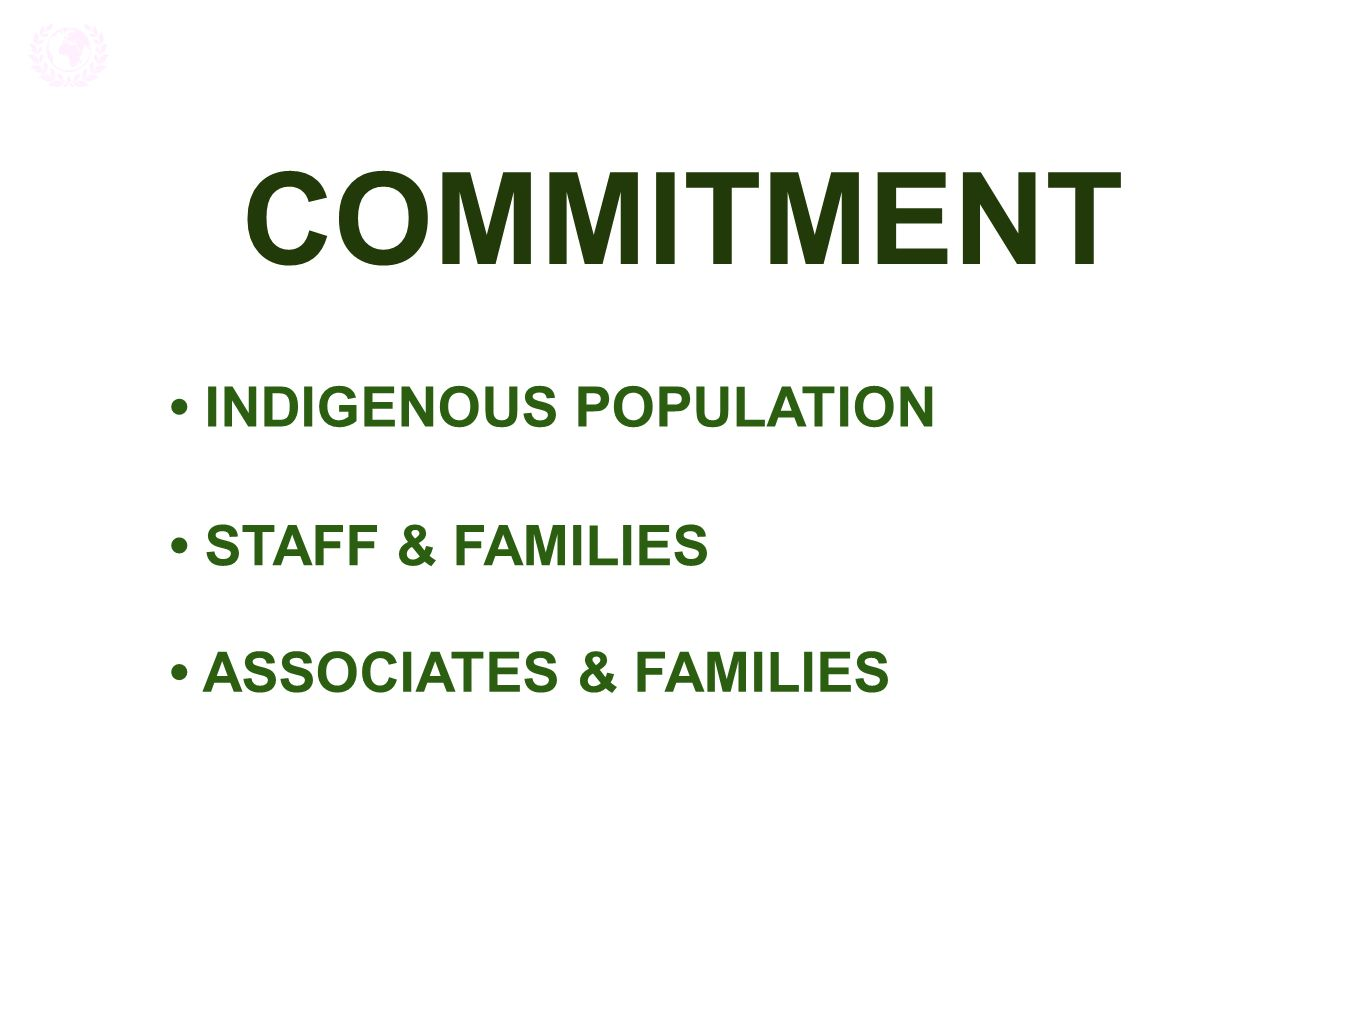 COMMITMENT INDIGENOUS POPULATION STAFF & FAMILIES ASSOCIATES & FAMILIES